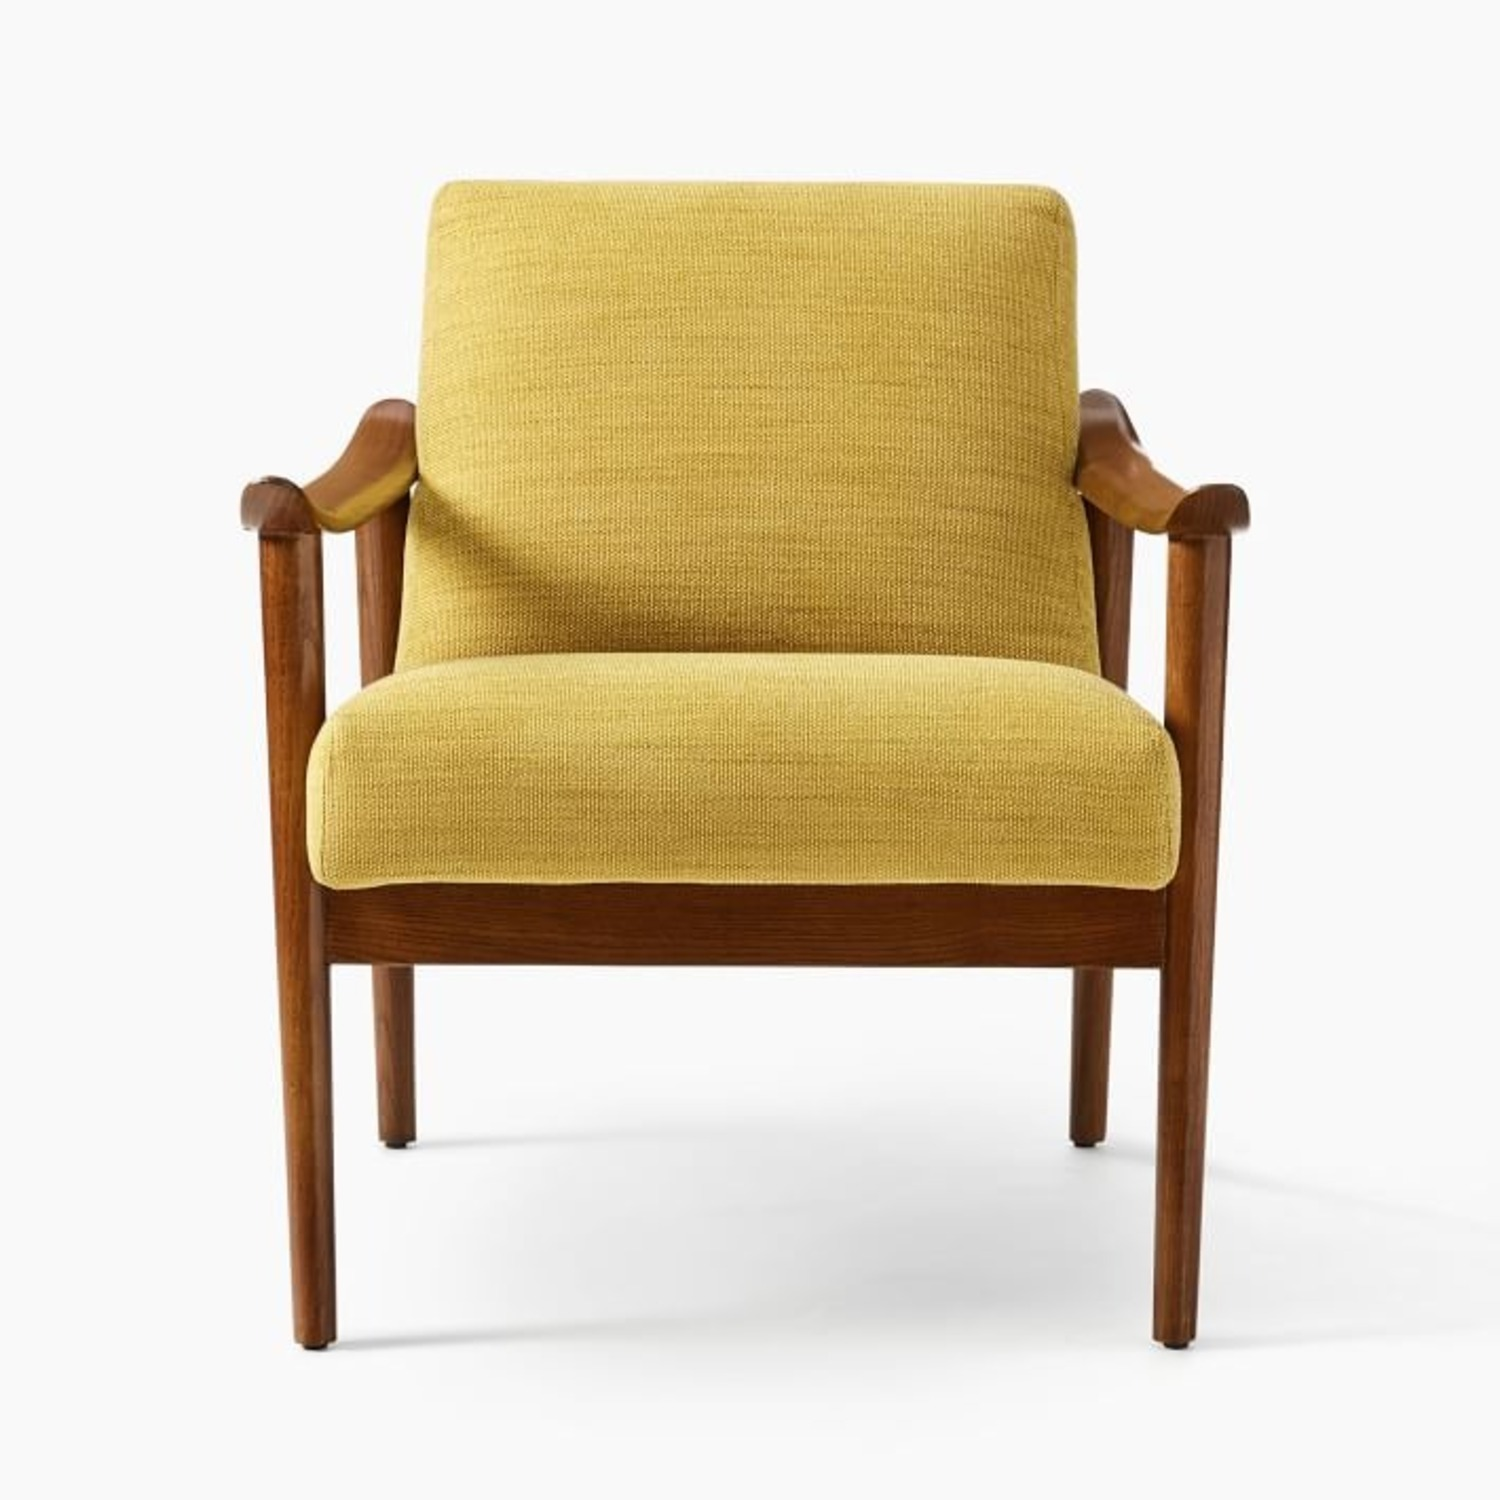 West Elm Mid-Century Show Wood Chair - image-2